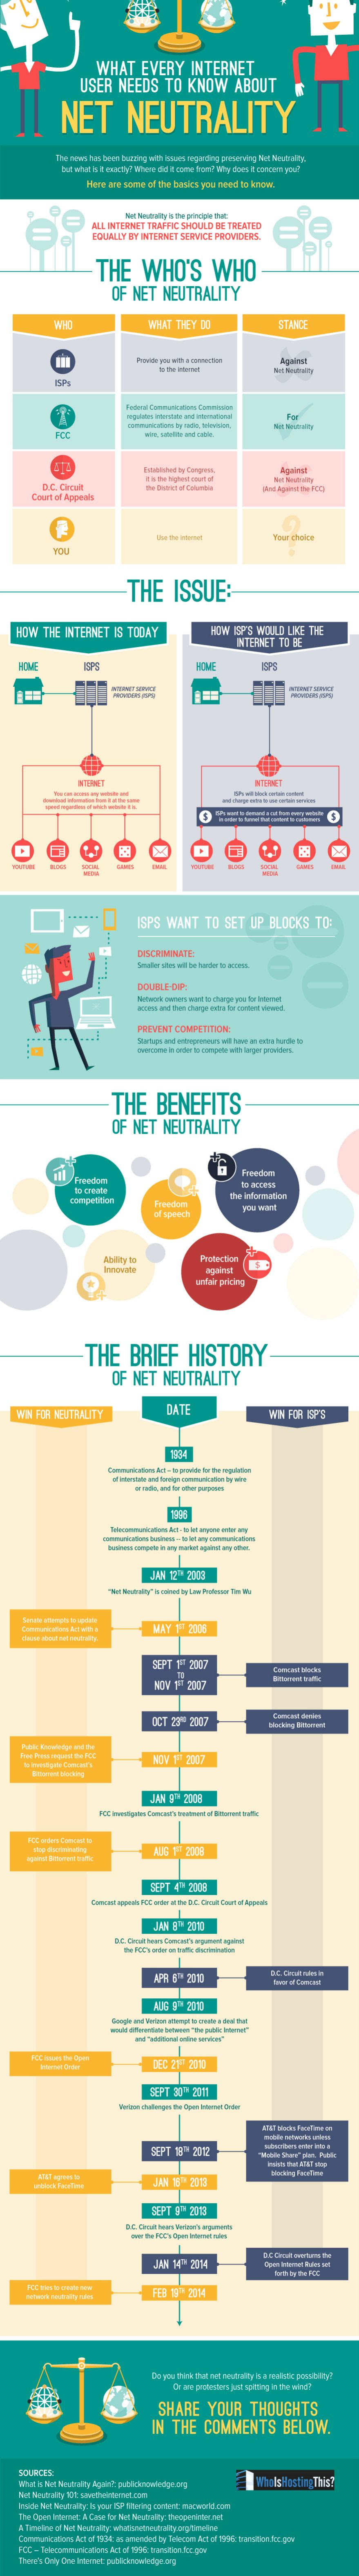 Infographic: What Every Internet User Needs to Know about Net Neutrality #infographic